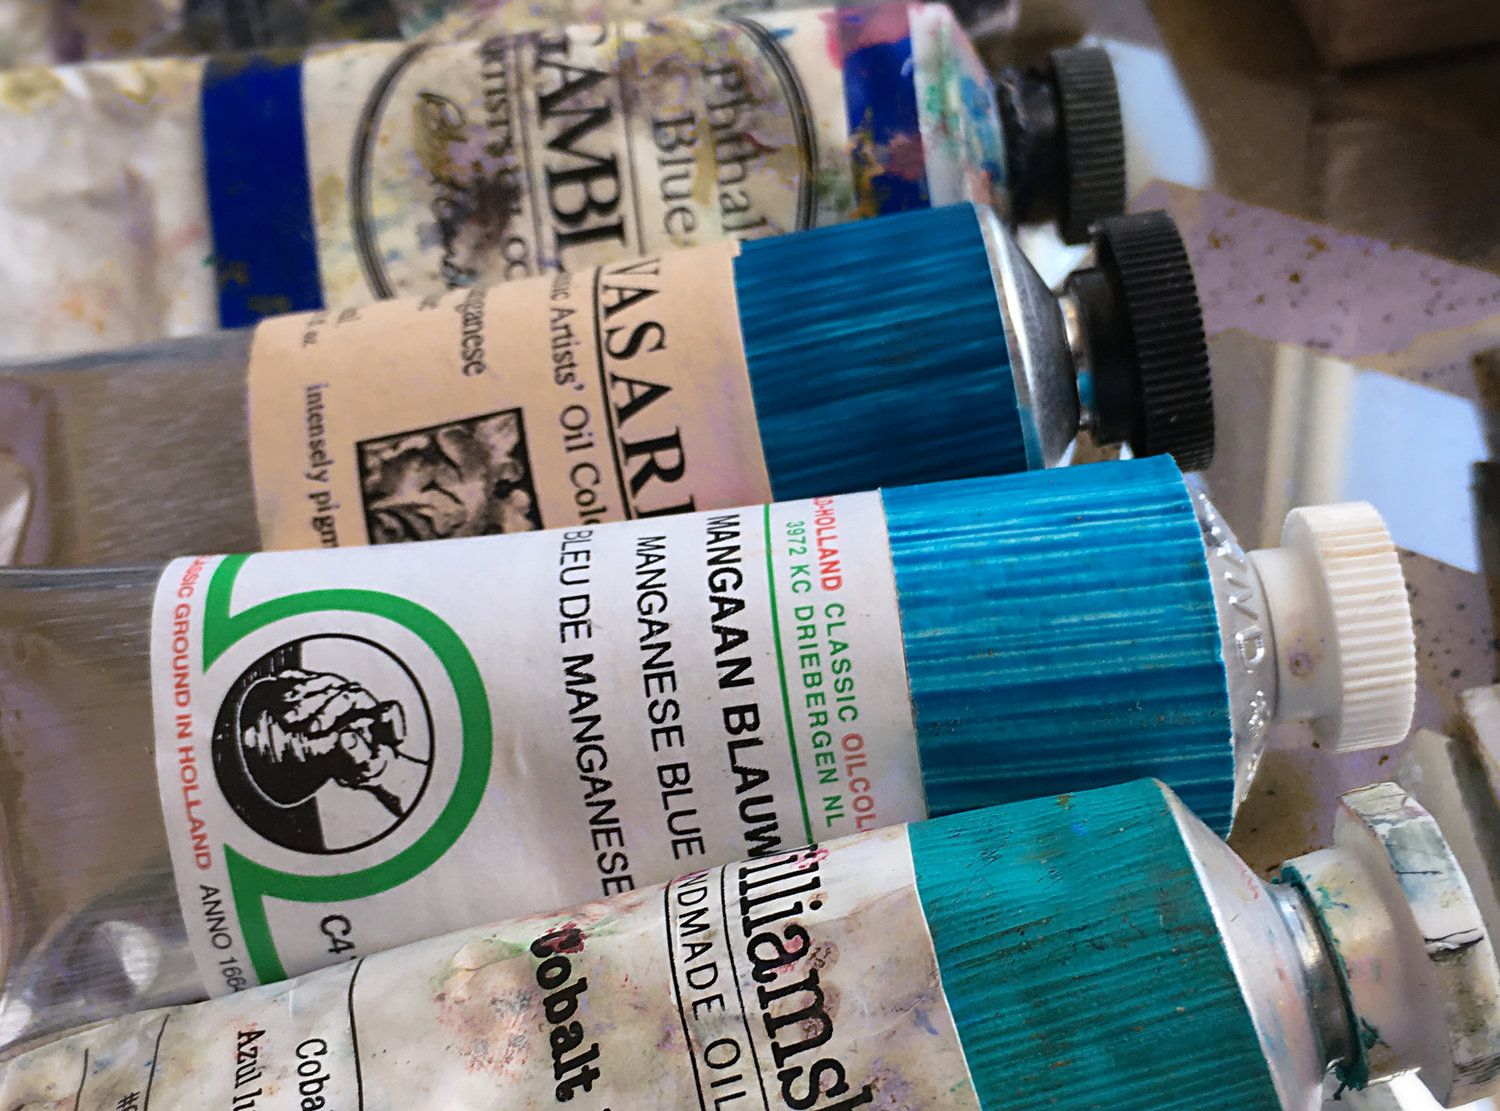 Here S A Shot Of The Old Tube Of Genuine Manganese Blue Paint Pb 33 That I Found At A Local Art Supply Store Art Supply Stores Mission Accomplished Manganese